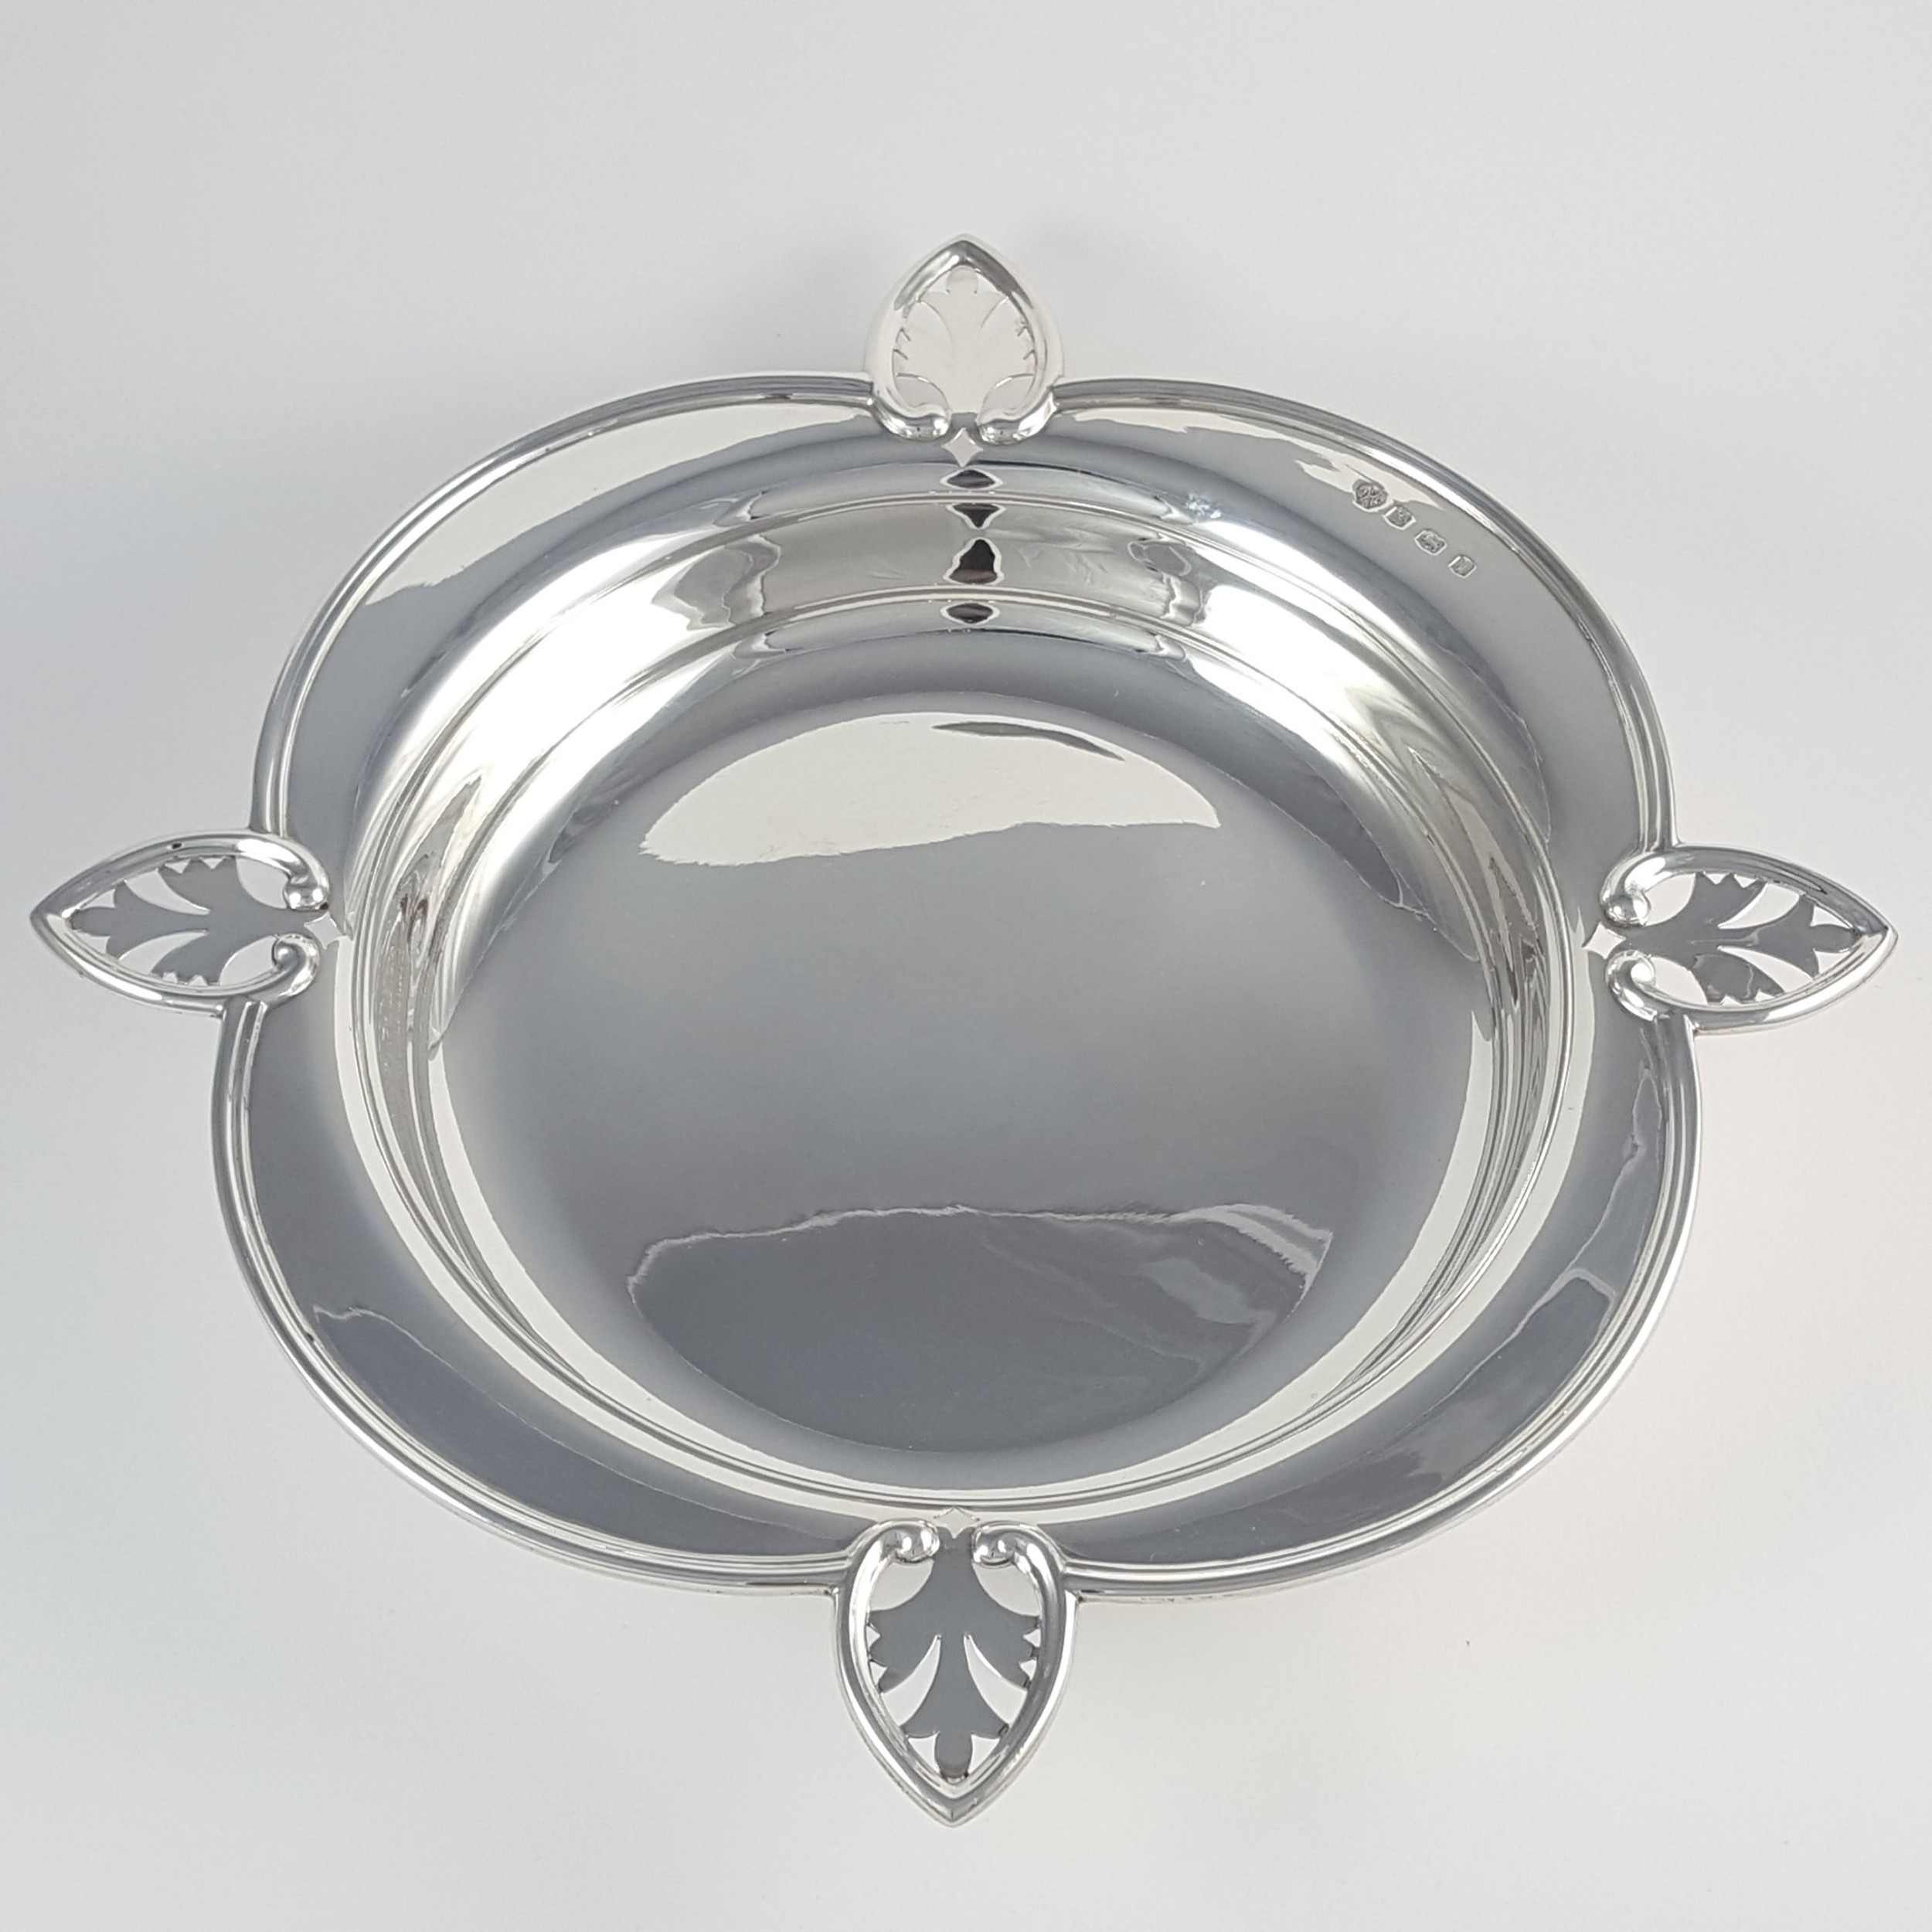 george v sterling silver dish william hutton sons sheffield 1928